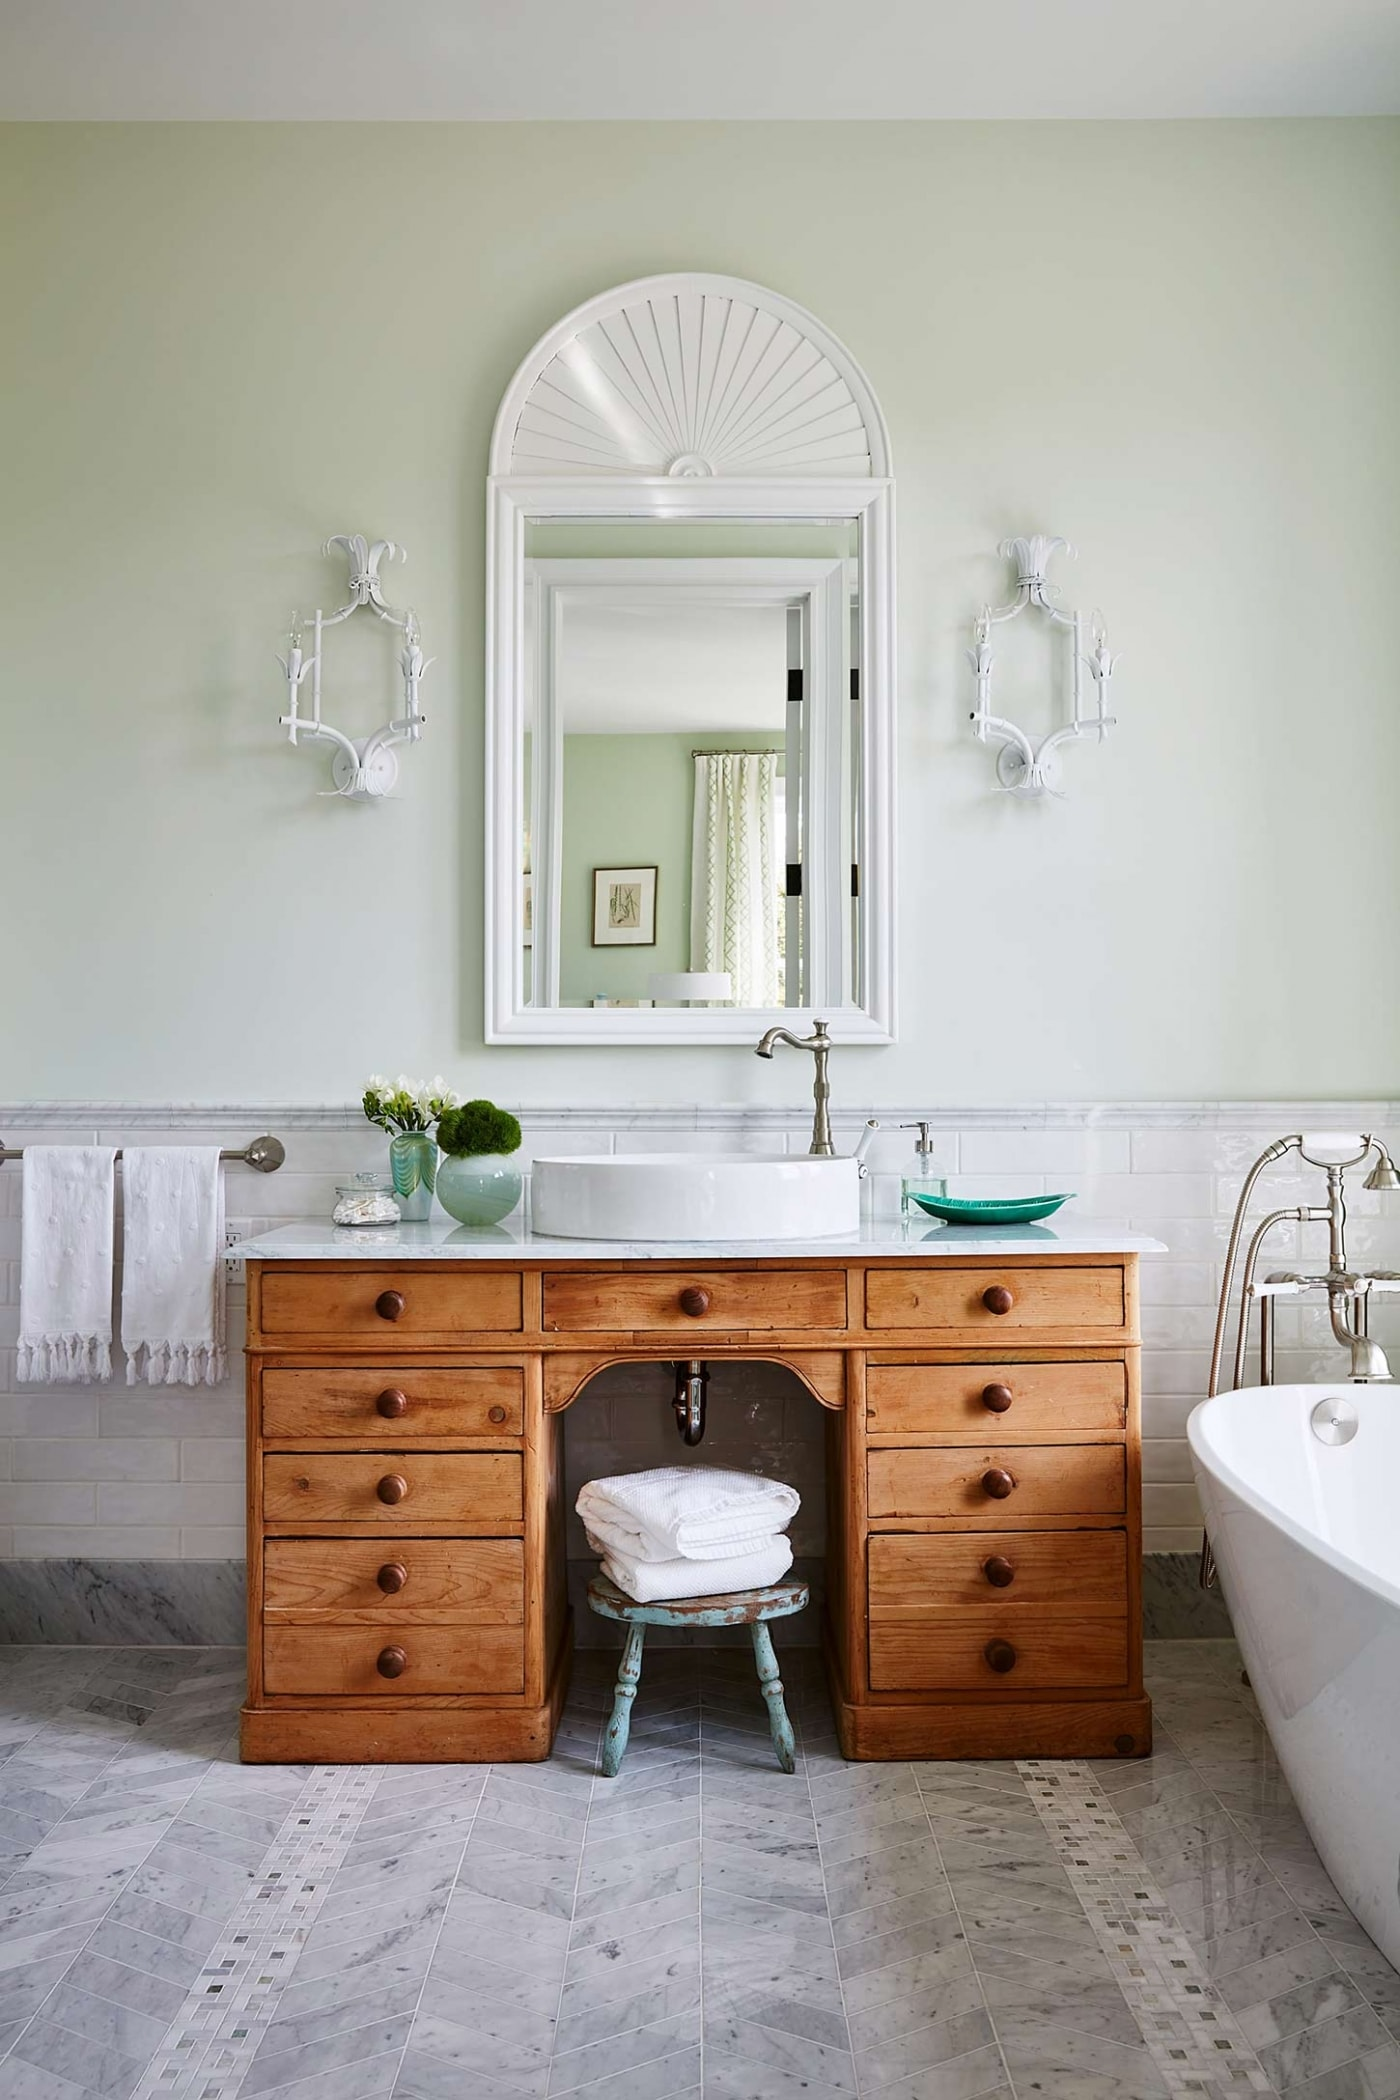 Wooden vanity, with mirror hung on wall in bathroom with marble floor, freestanding tub, and subway wainscot